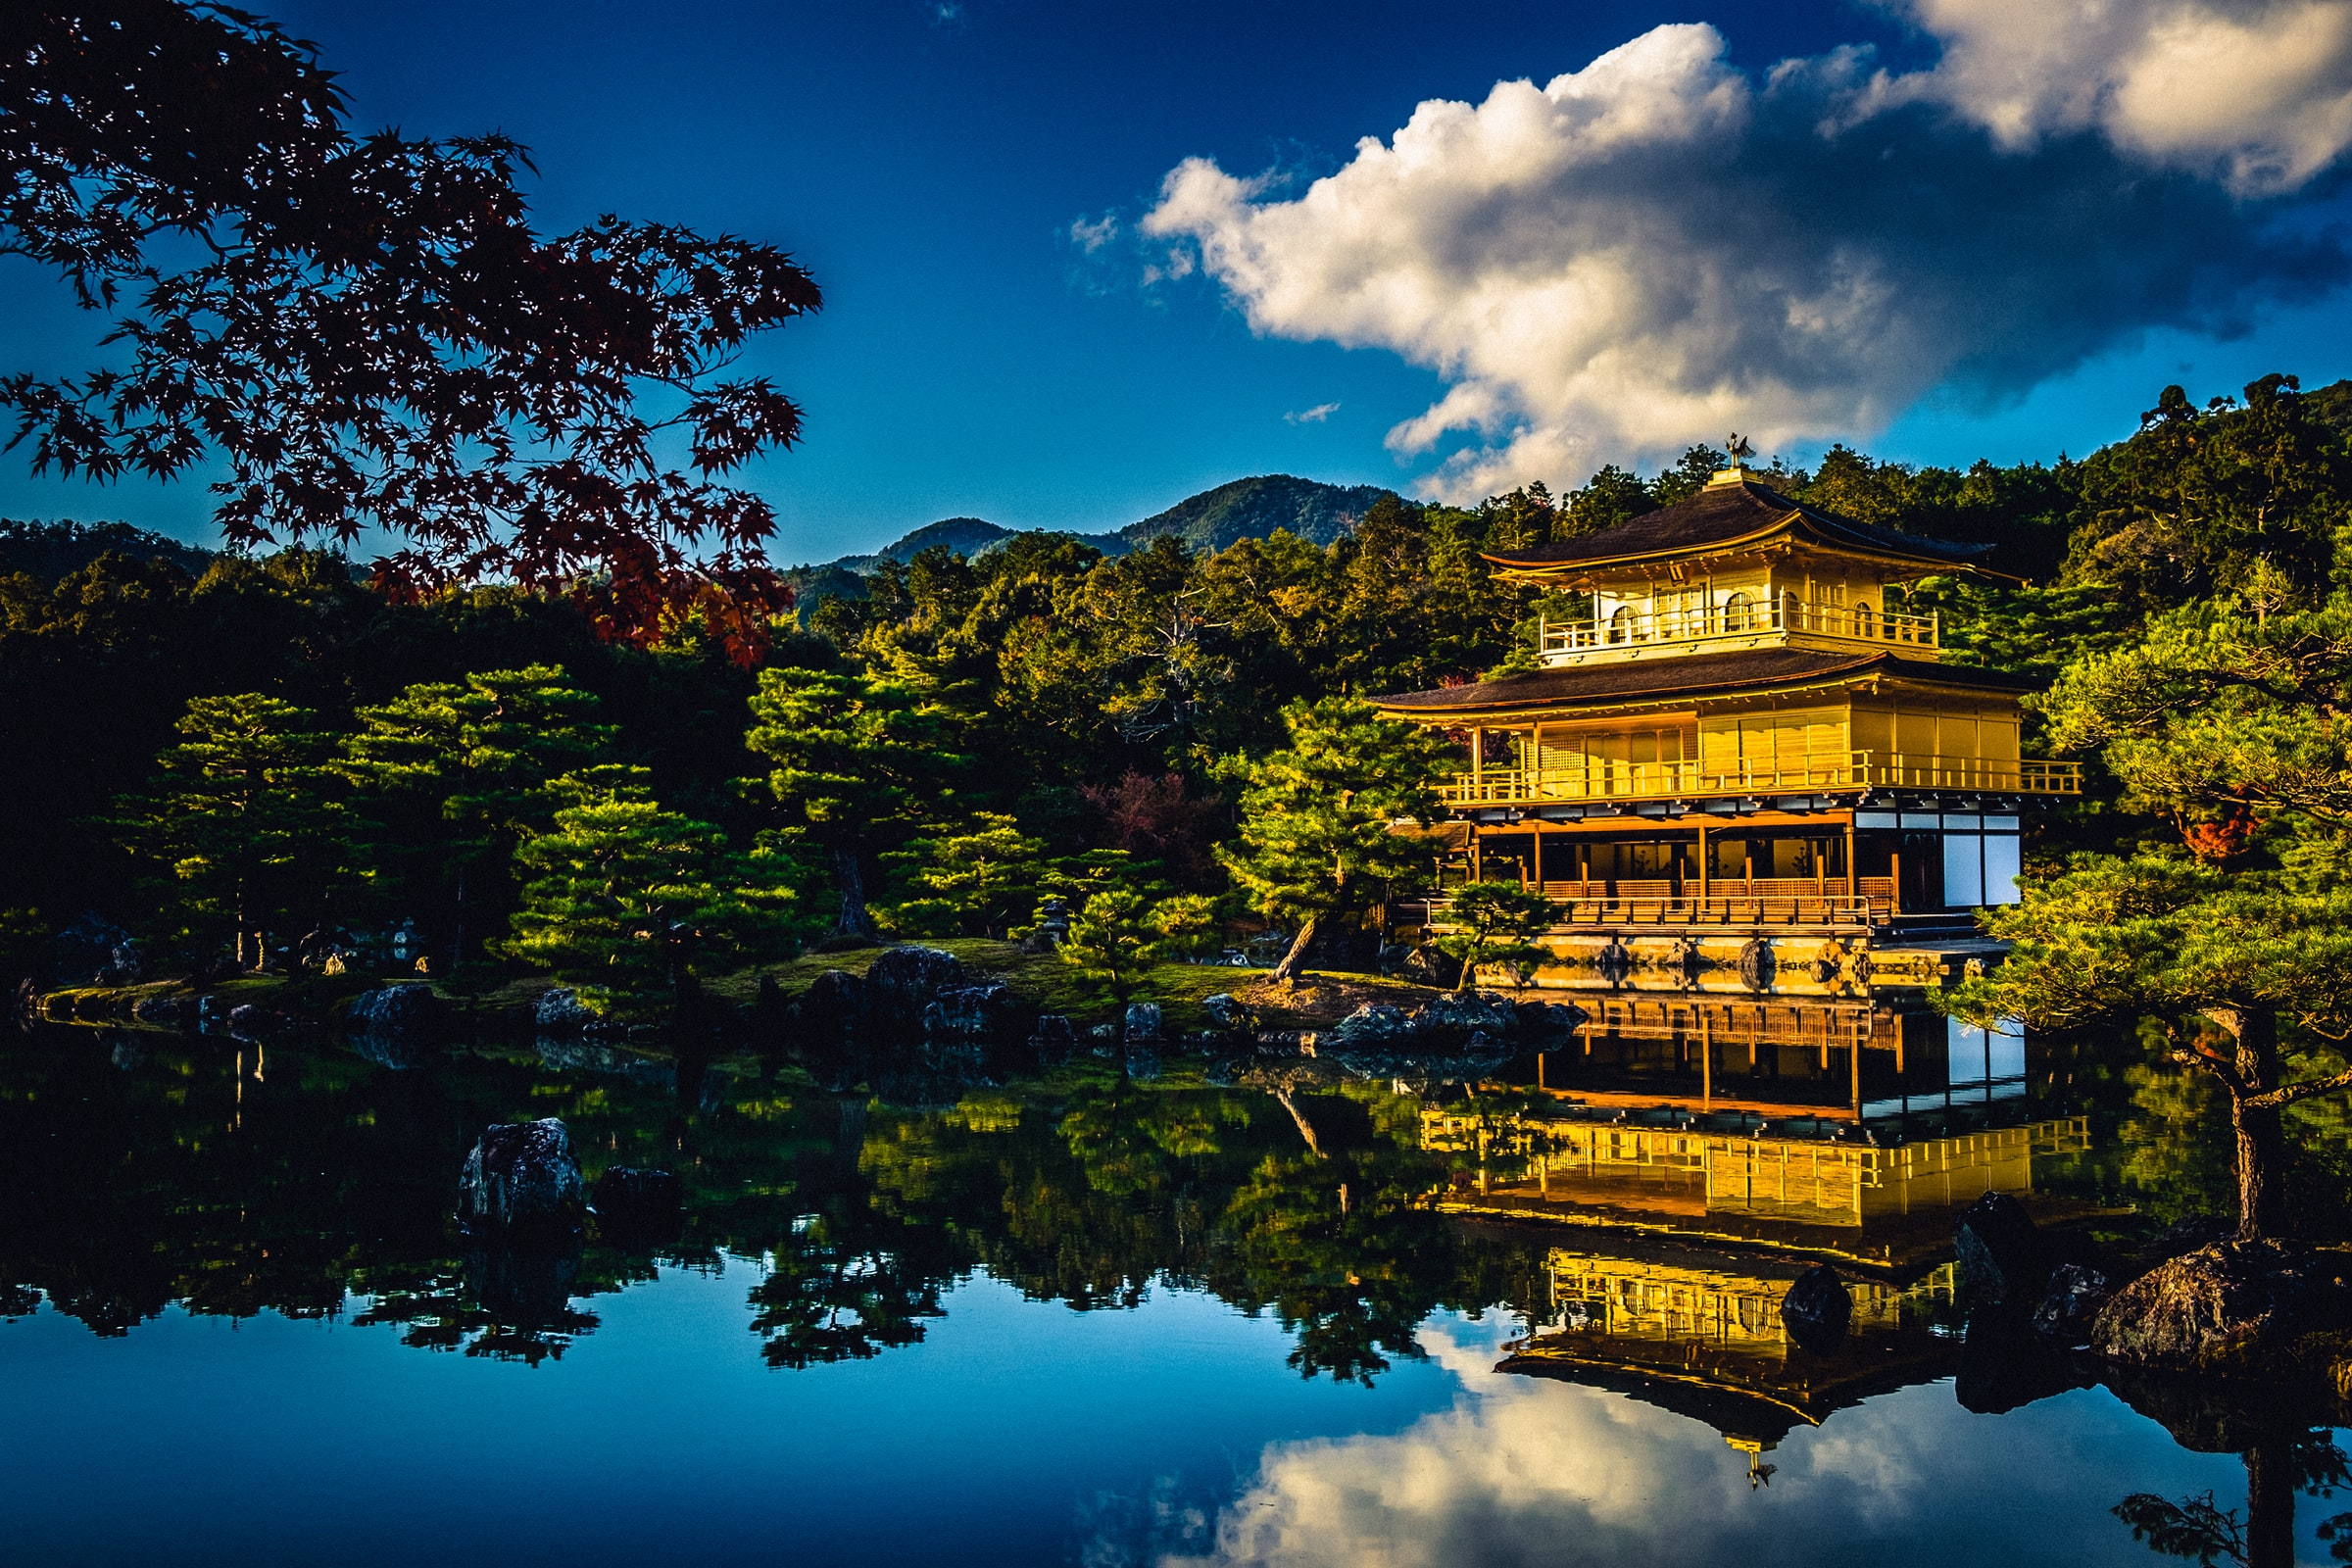 10 Things To Do In Kyoto Prefecture, Japan [with Suggested Tours] 02